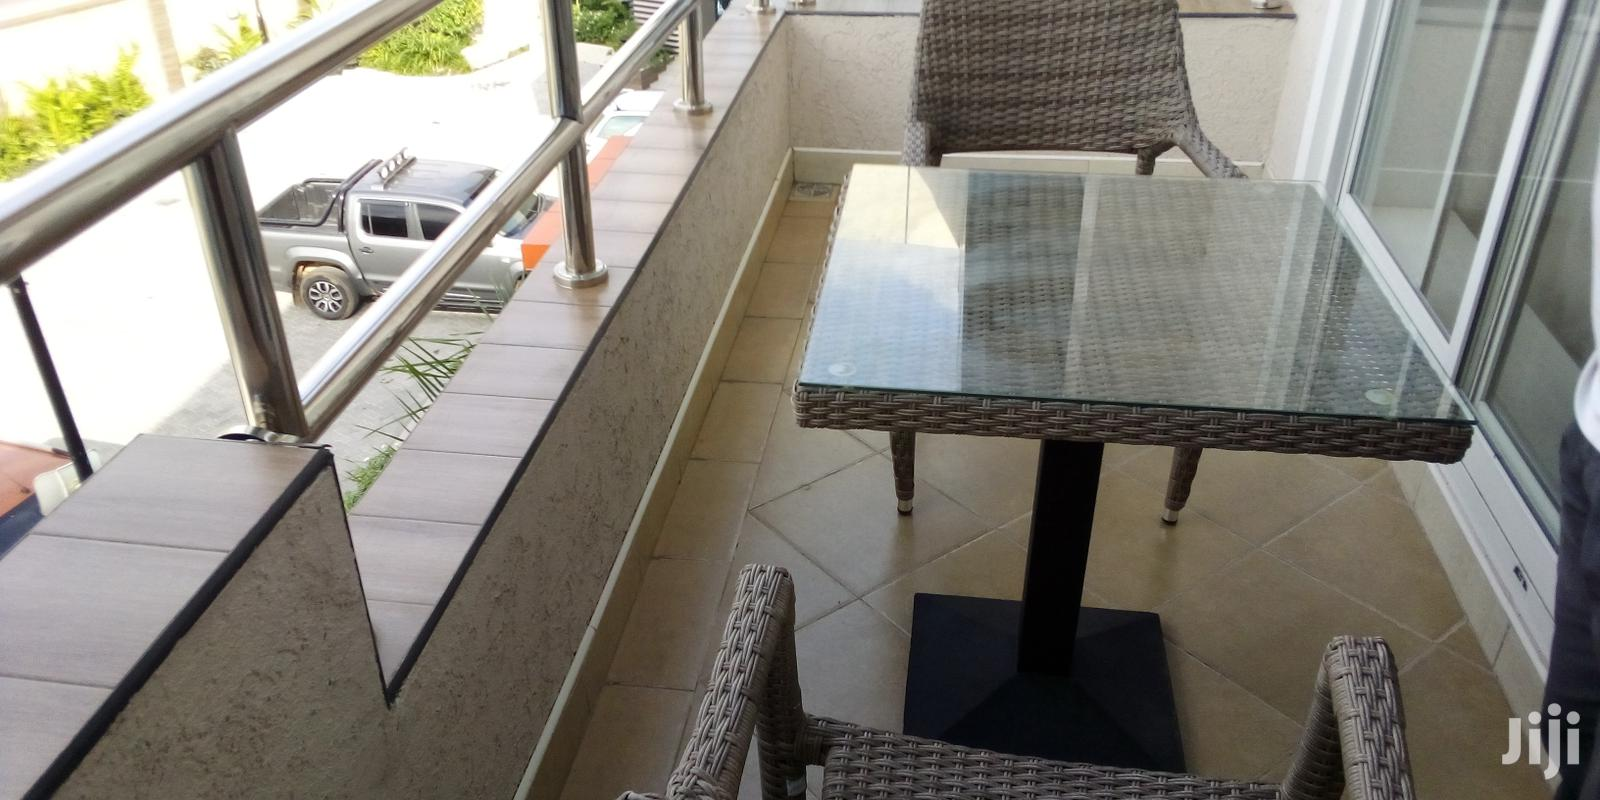 Specious 2 Bedrooms Fully Furnished For Rent At Kijitonyama | Houses & Apartments For Rent for sale in Kinondoni, Dar es Salaam, Tanzania